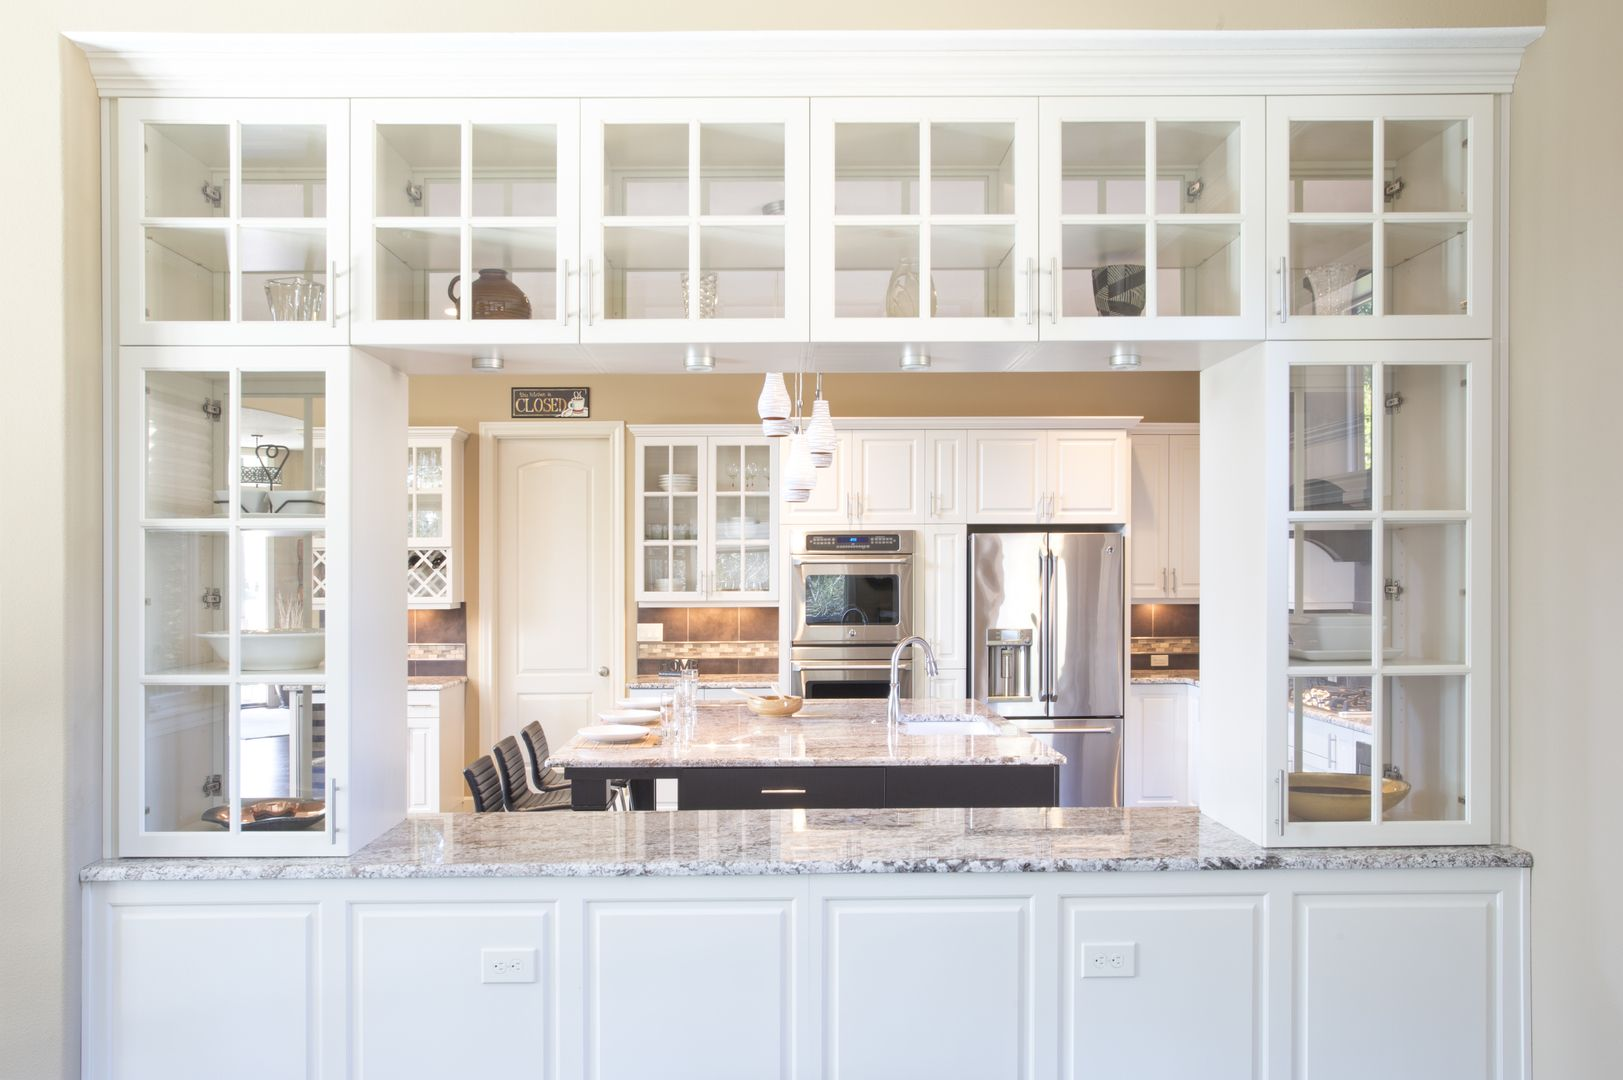 Two Sided Kitchen Cabinets Built In Buffet Kitchen Built Ins White Built Ins